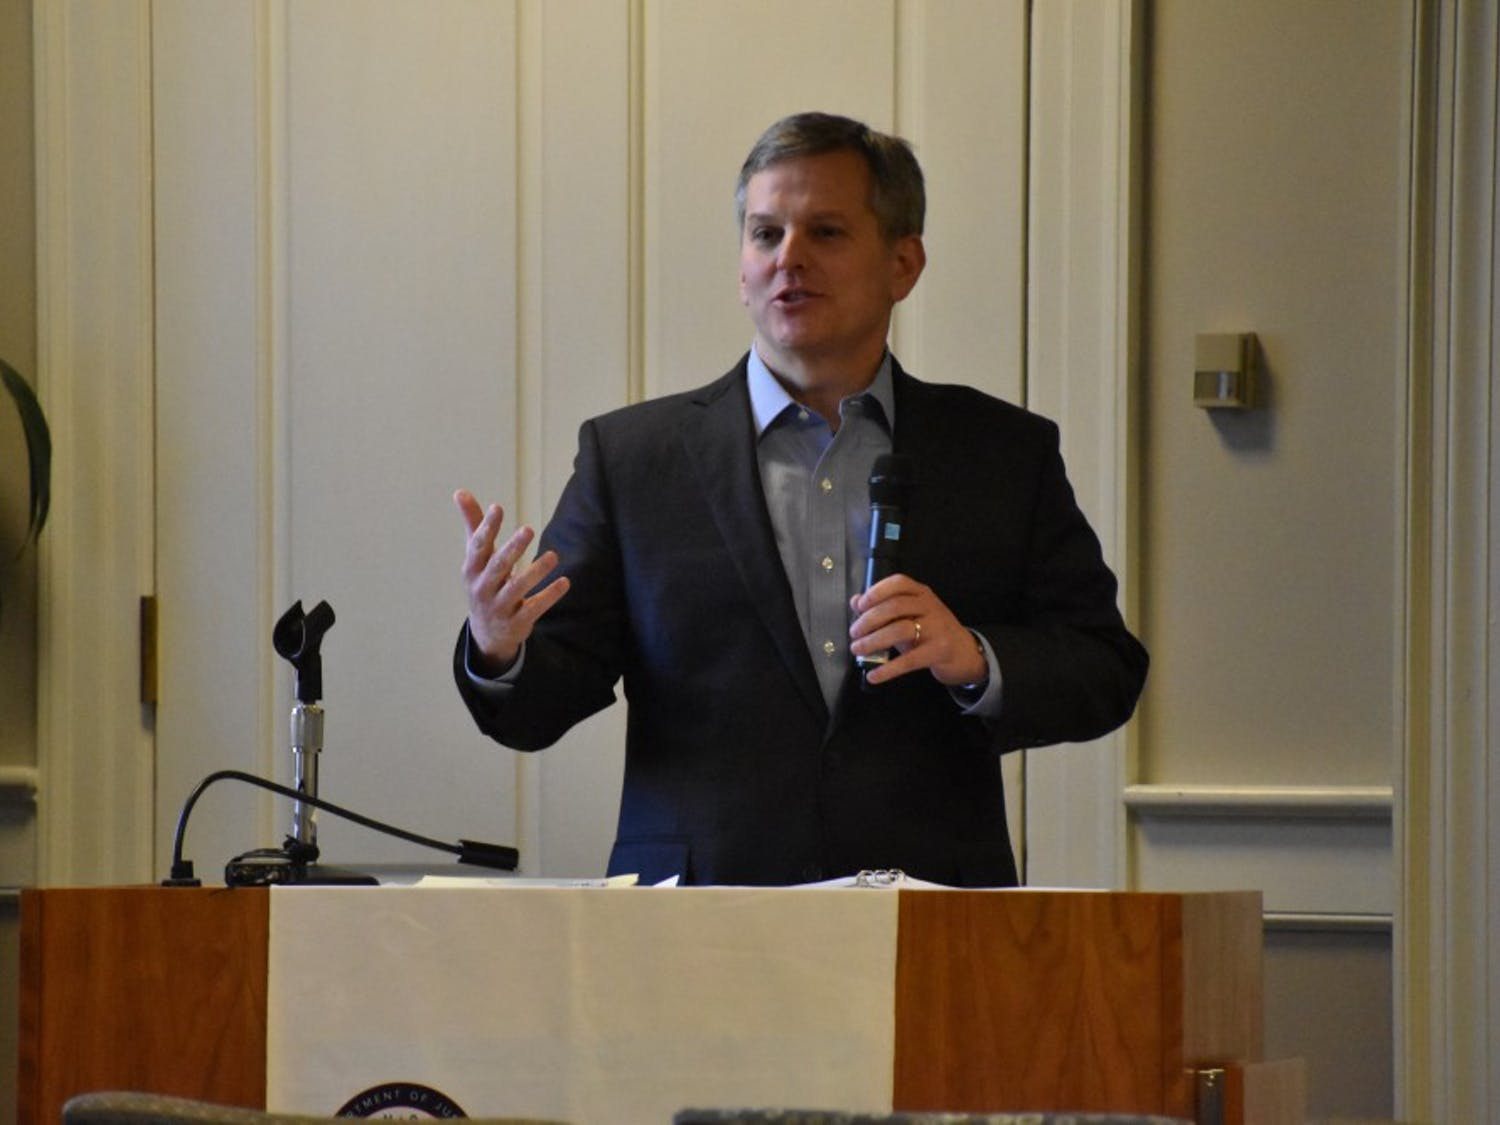 North Carolina Attorney General Josh Stein delivers a talk at UNC on Thursday afternoon about problems that affect college campuses.